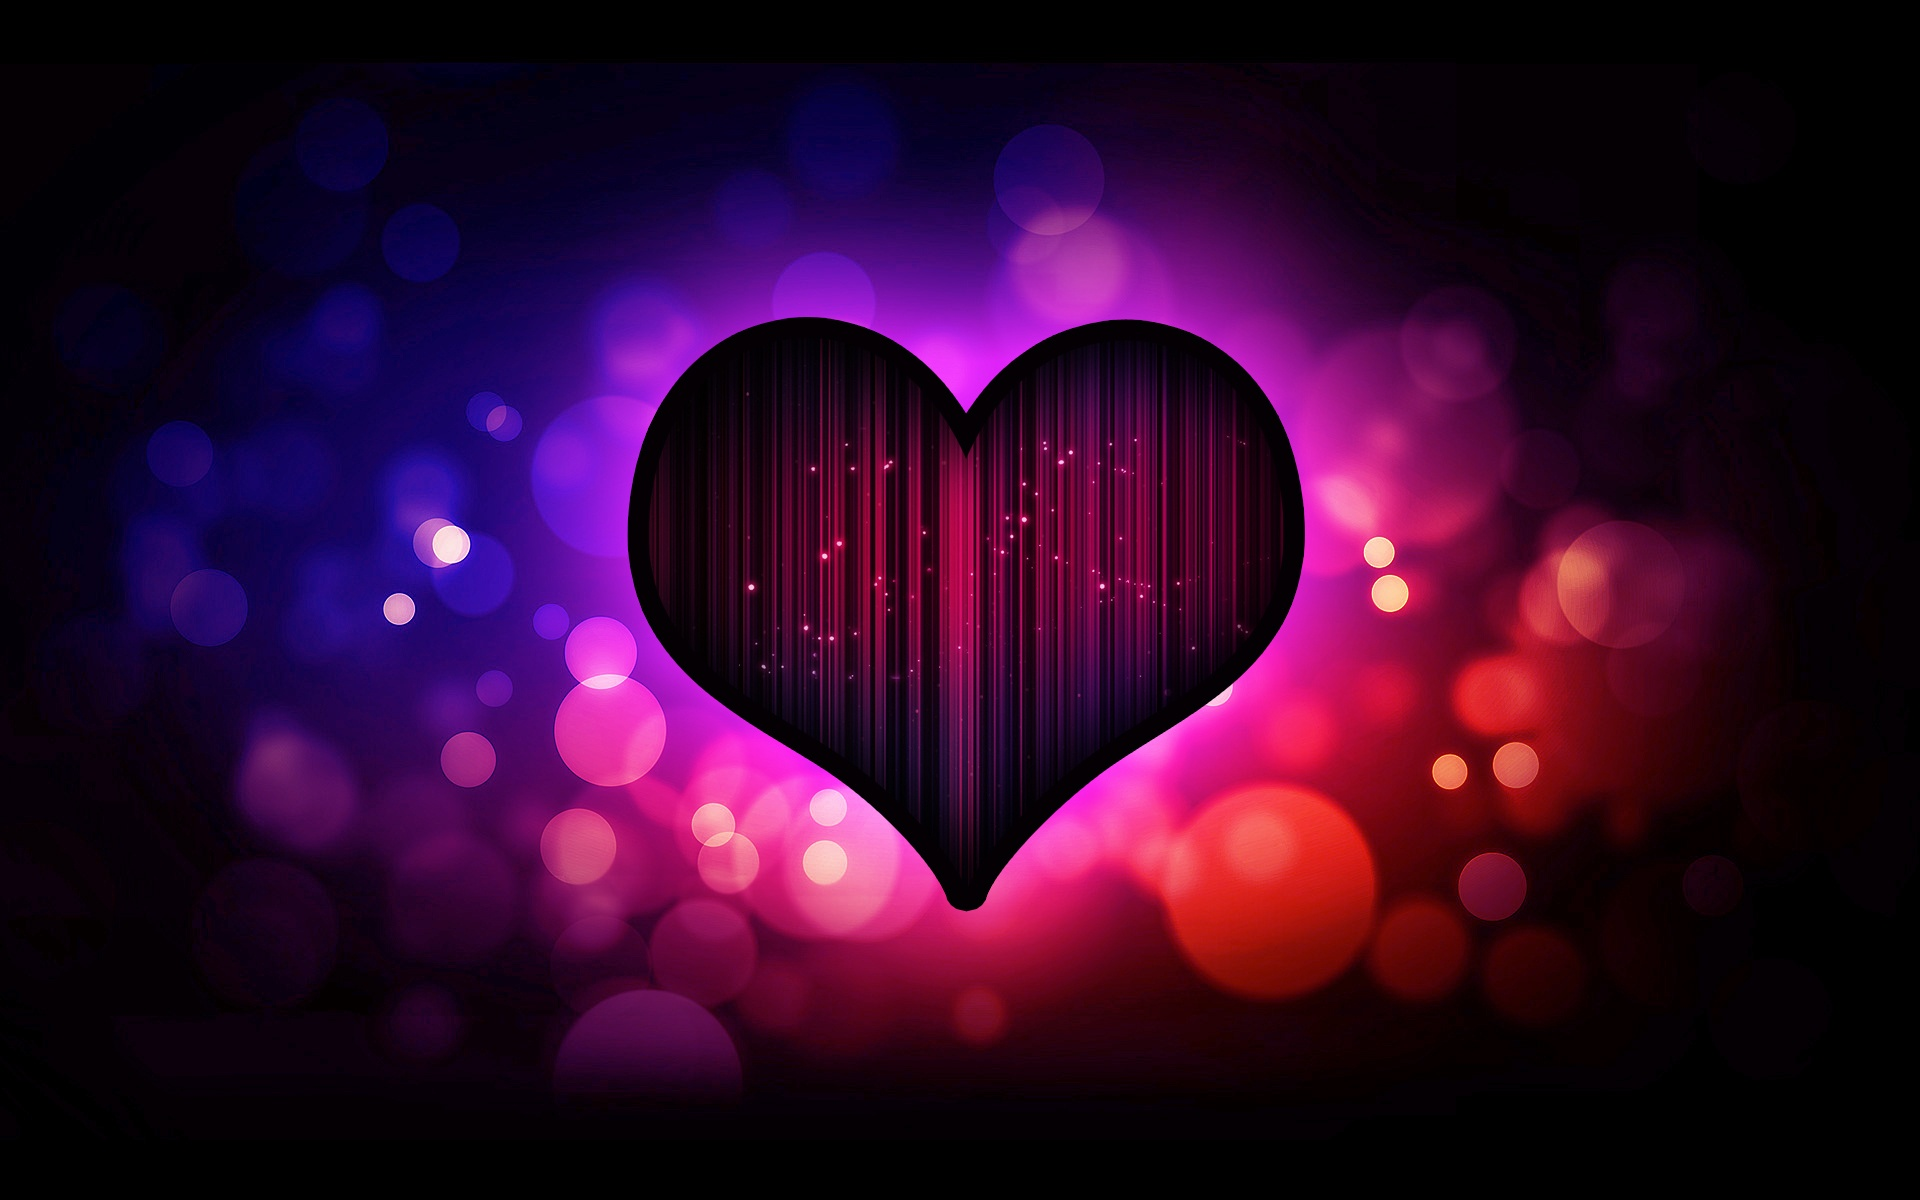 Wallpaper Dark purple heart love 1920x1200 HD Picture, Image